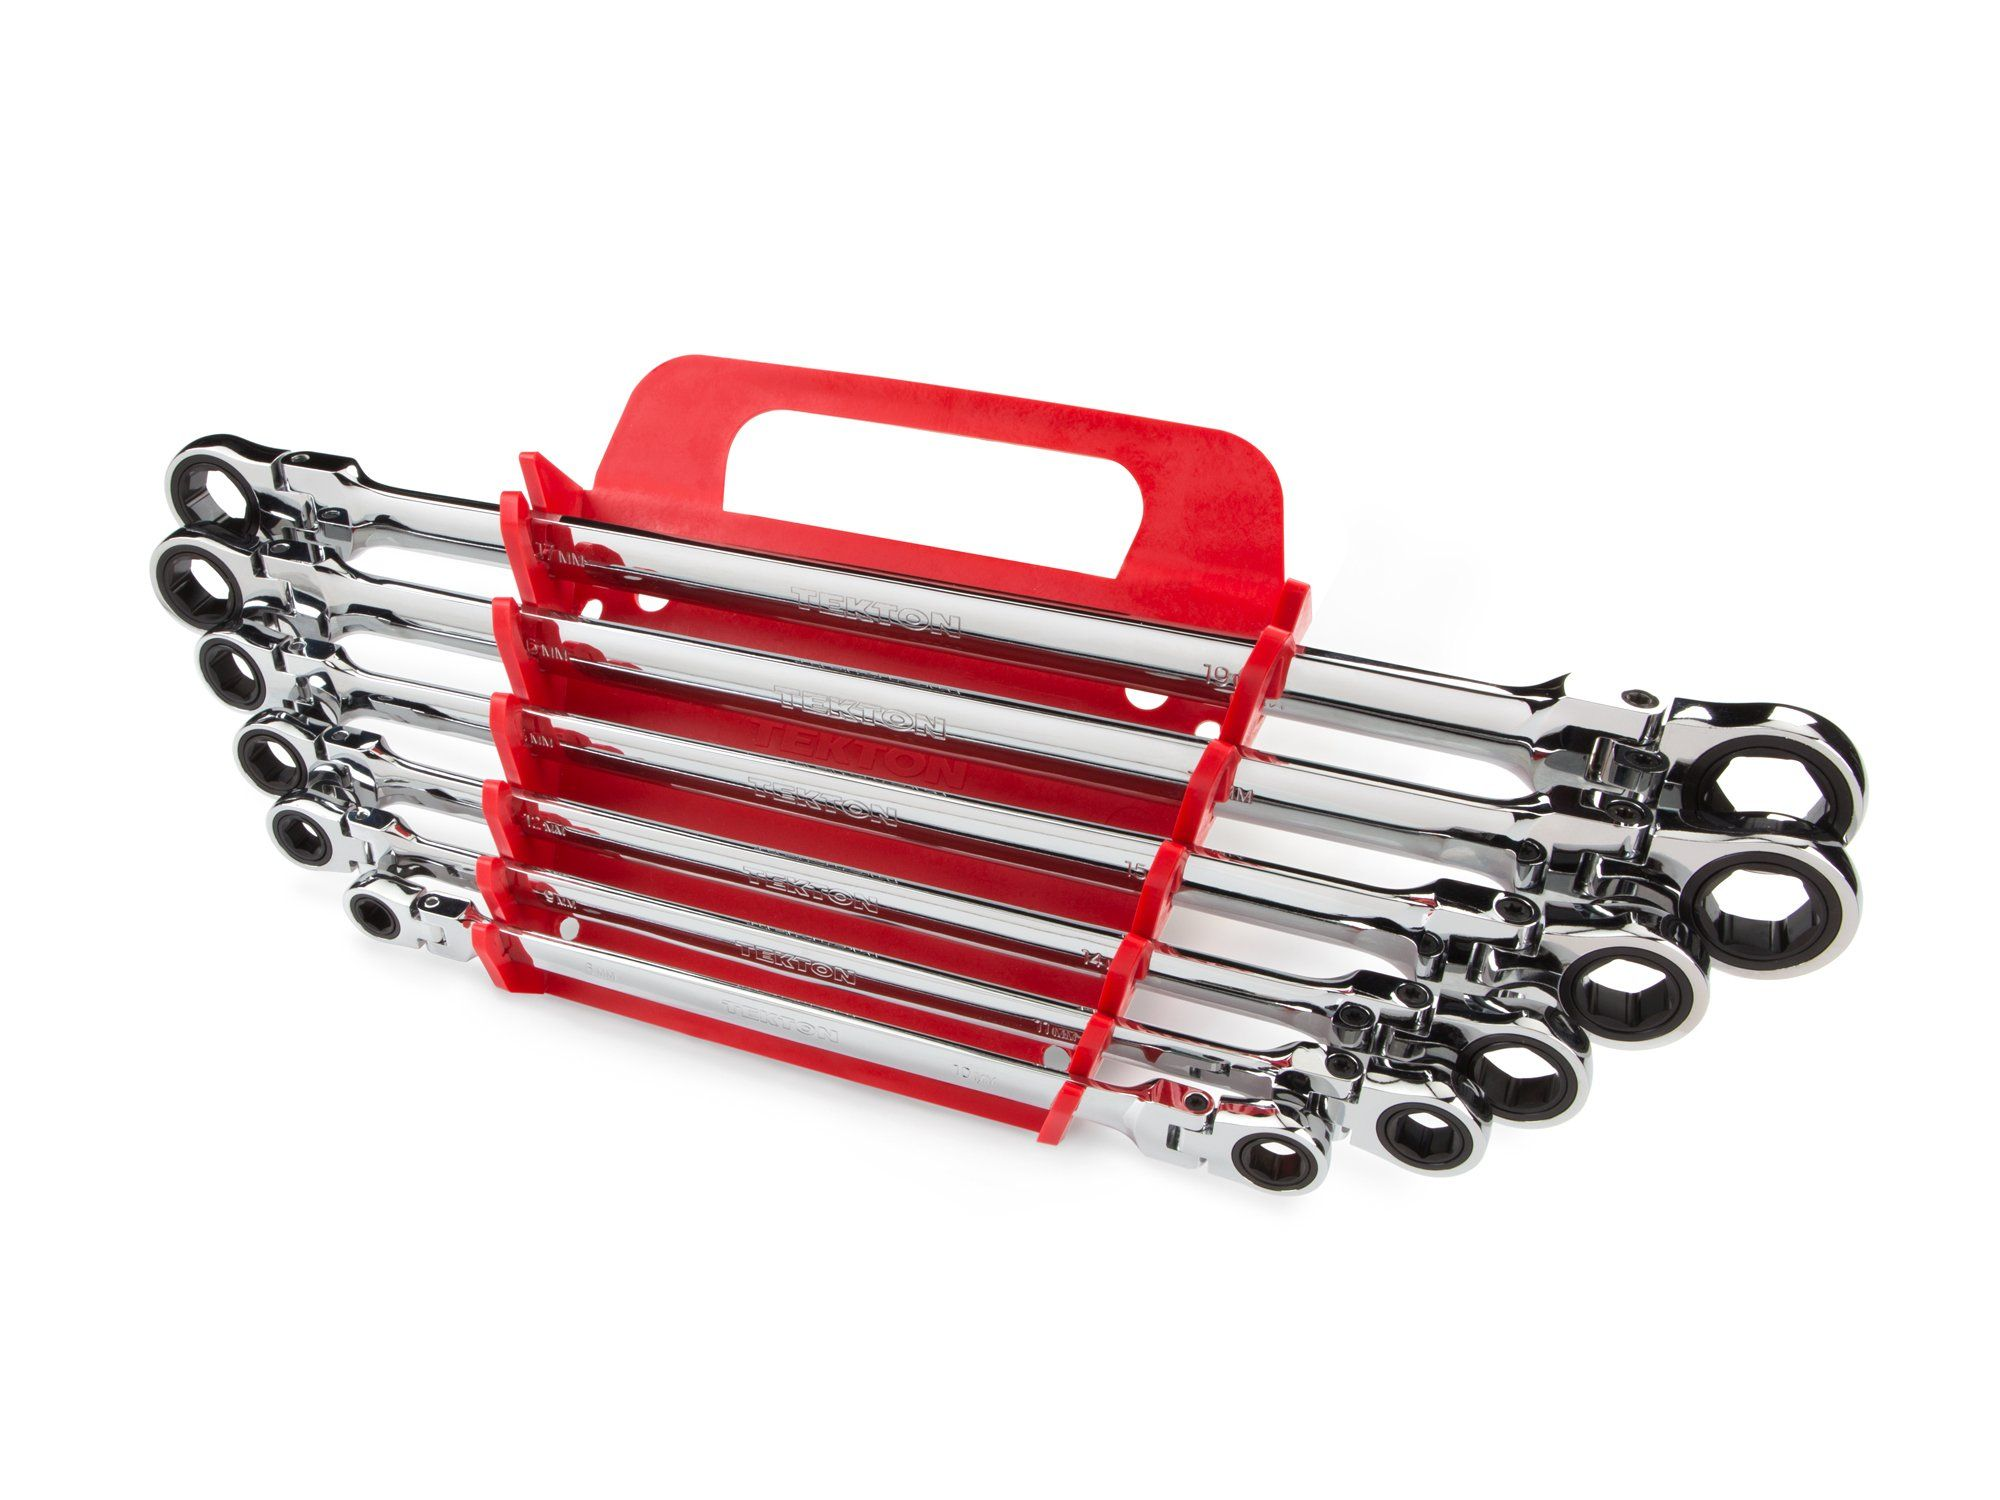 TEKTON WRN77164 Extra Long Flex-Head Ratcheting Box End Wrench Set with Store and Go Keeper, Metric, 8 mm - 19 mm, 6-Piece